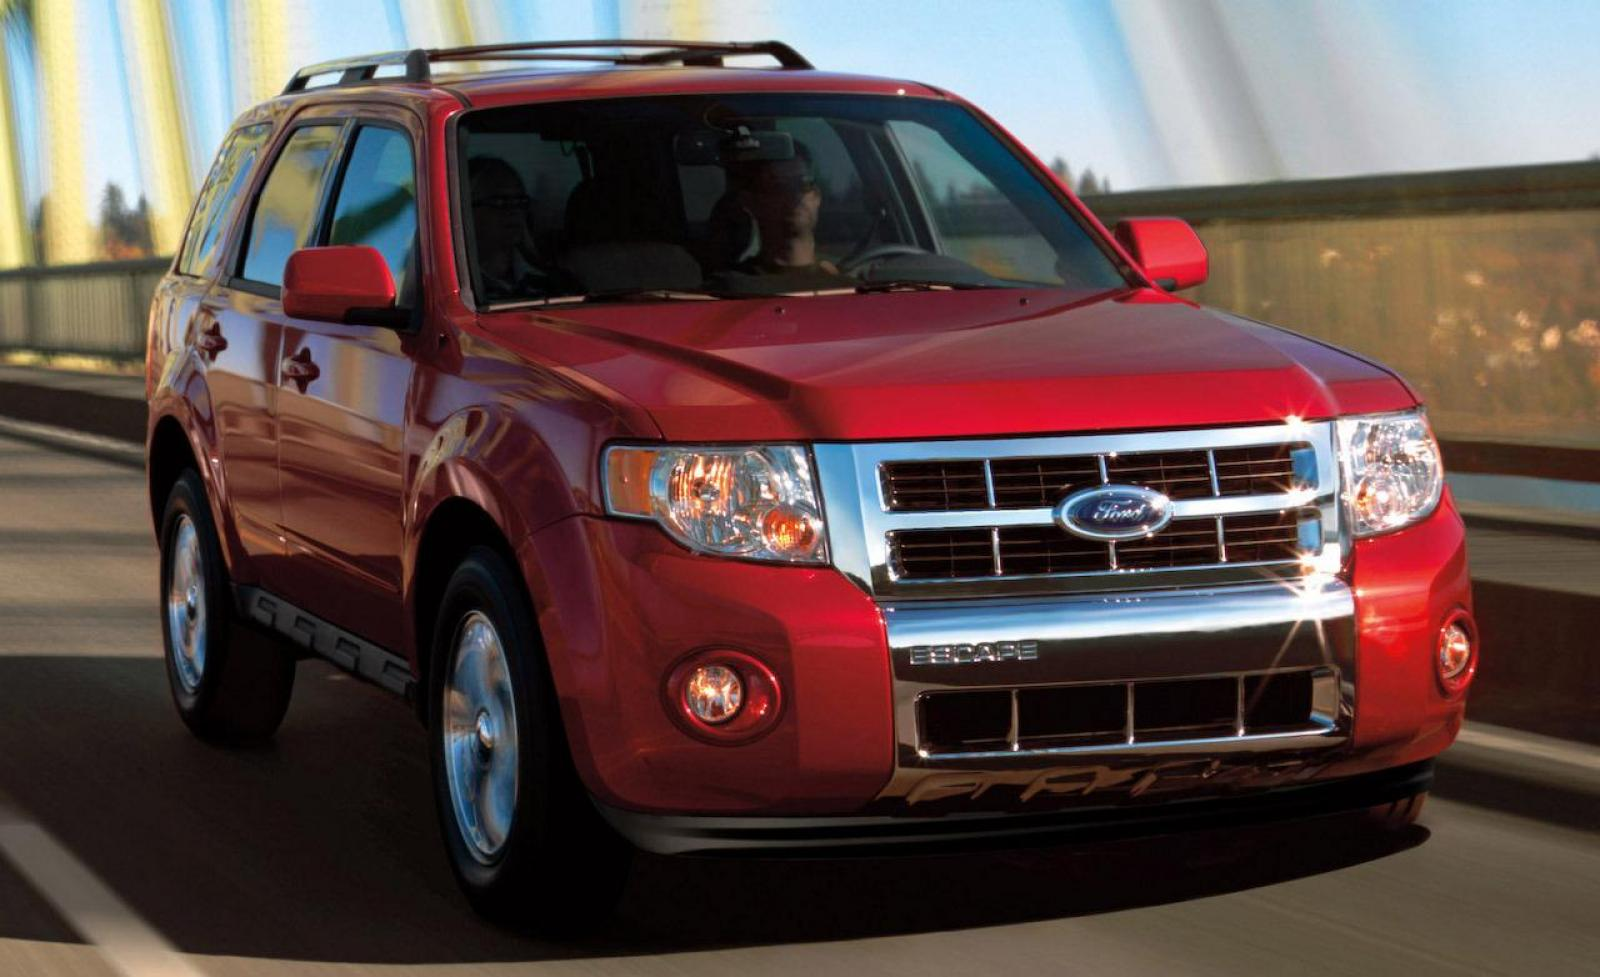 2009 Ford Escape Information And Photos Zomb Drive